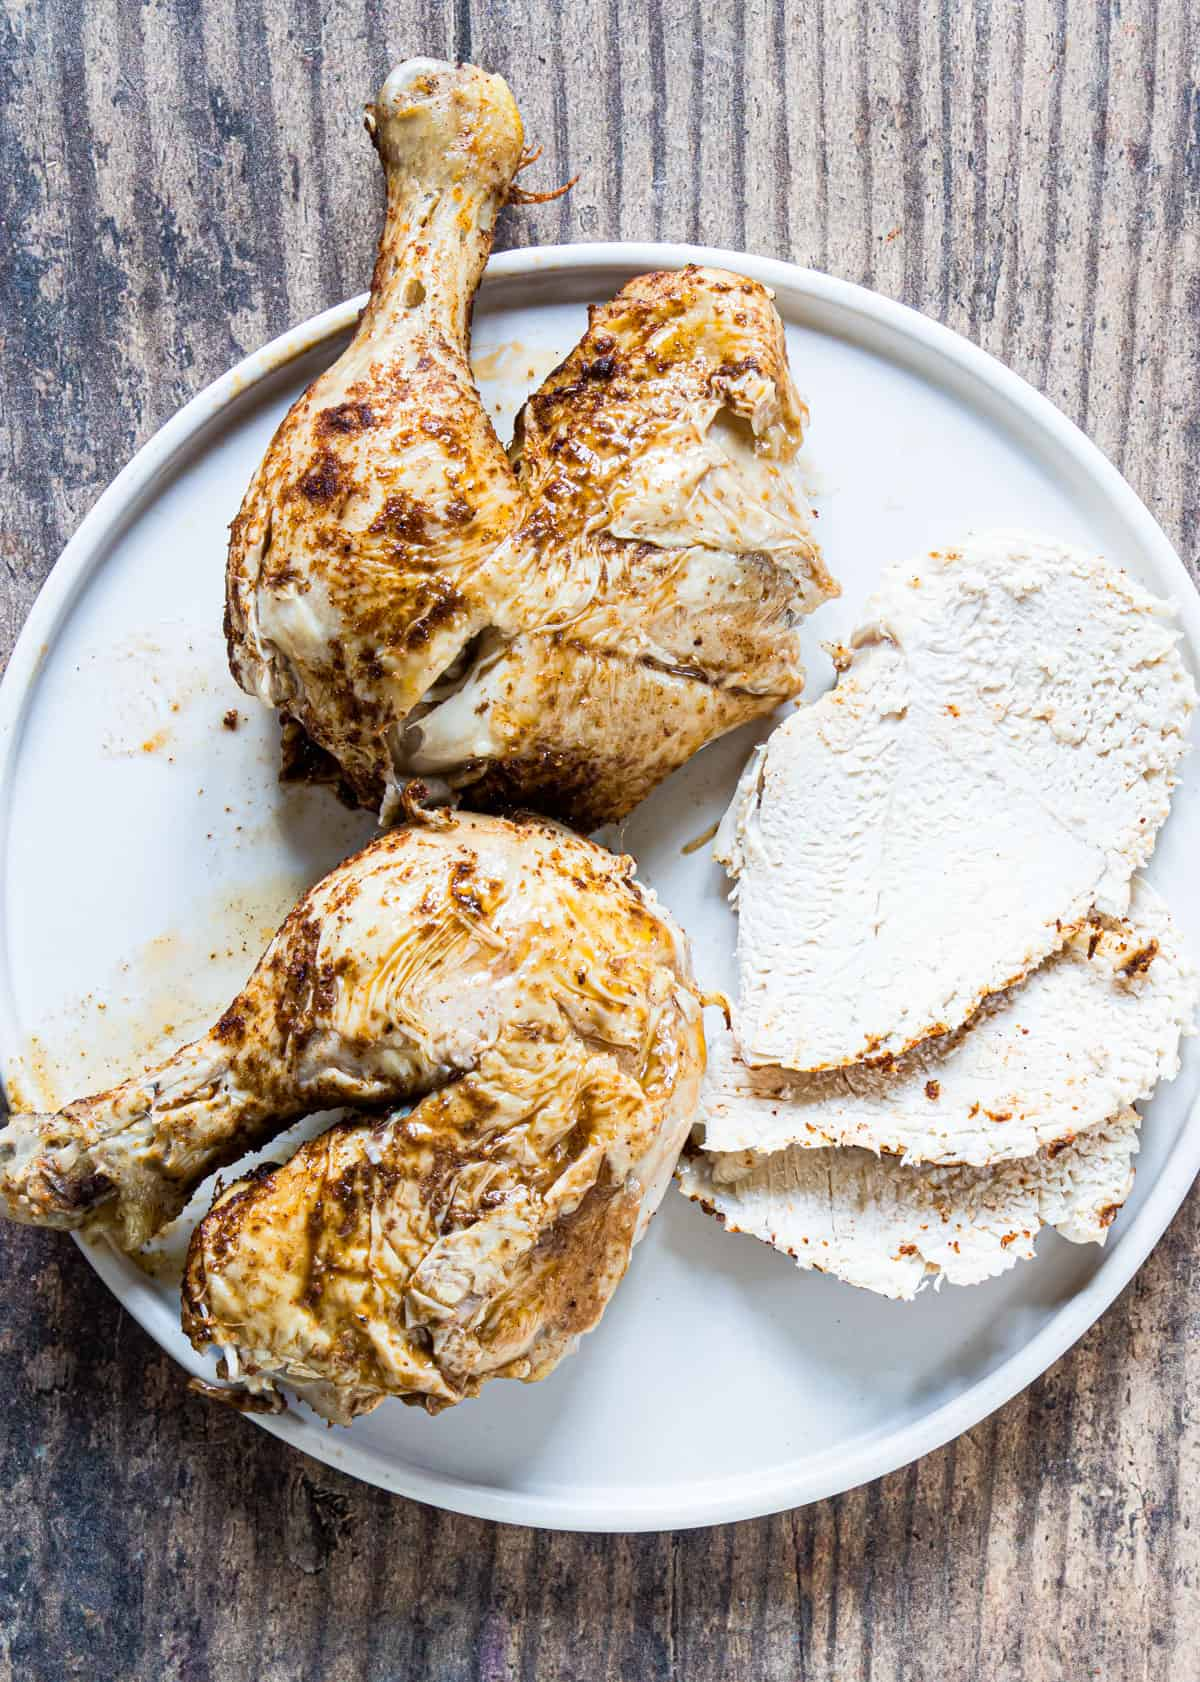 whole chicken sliced into portions and ready to serve